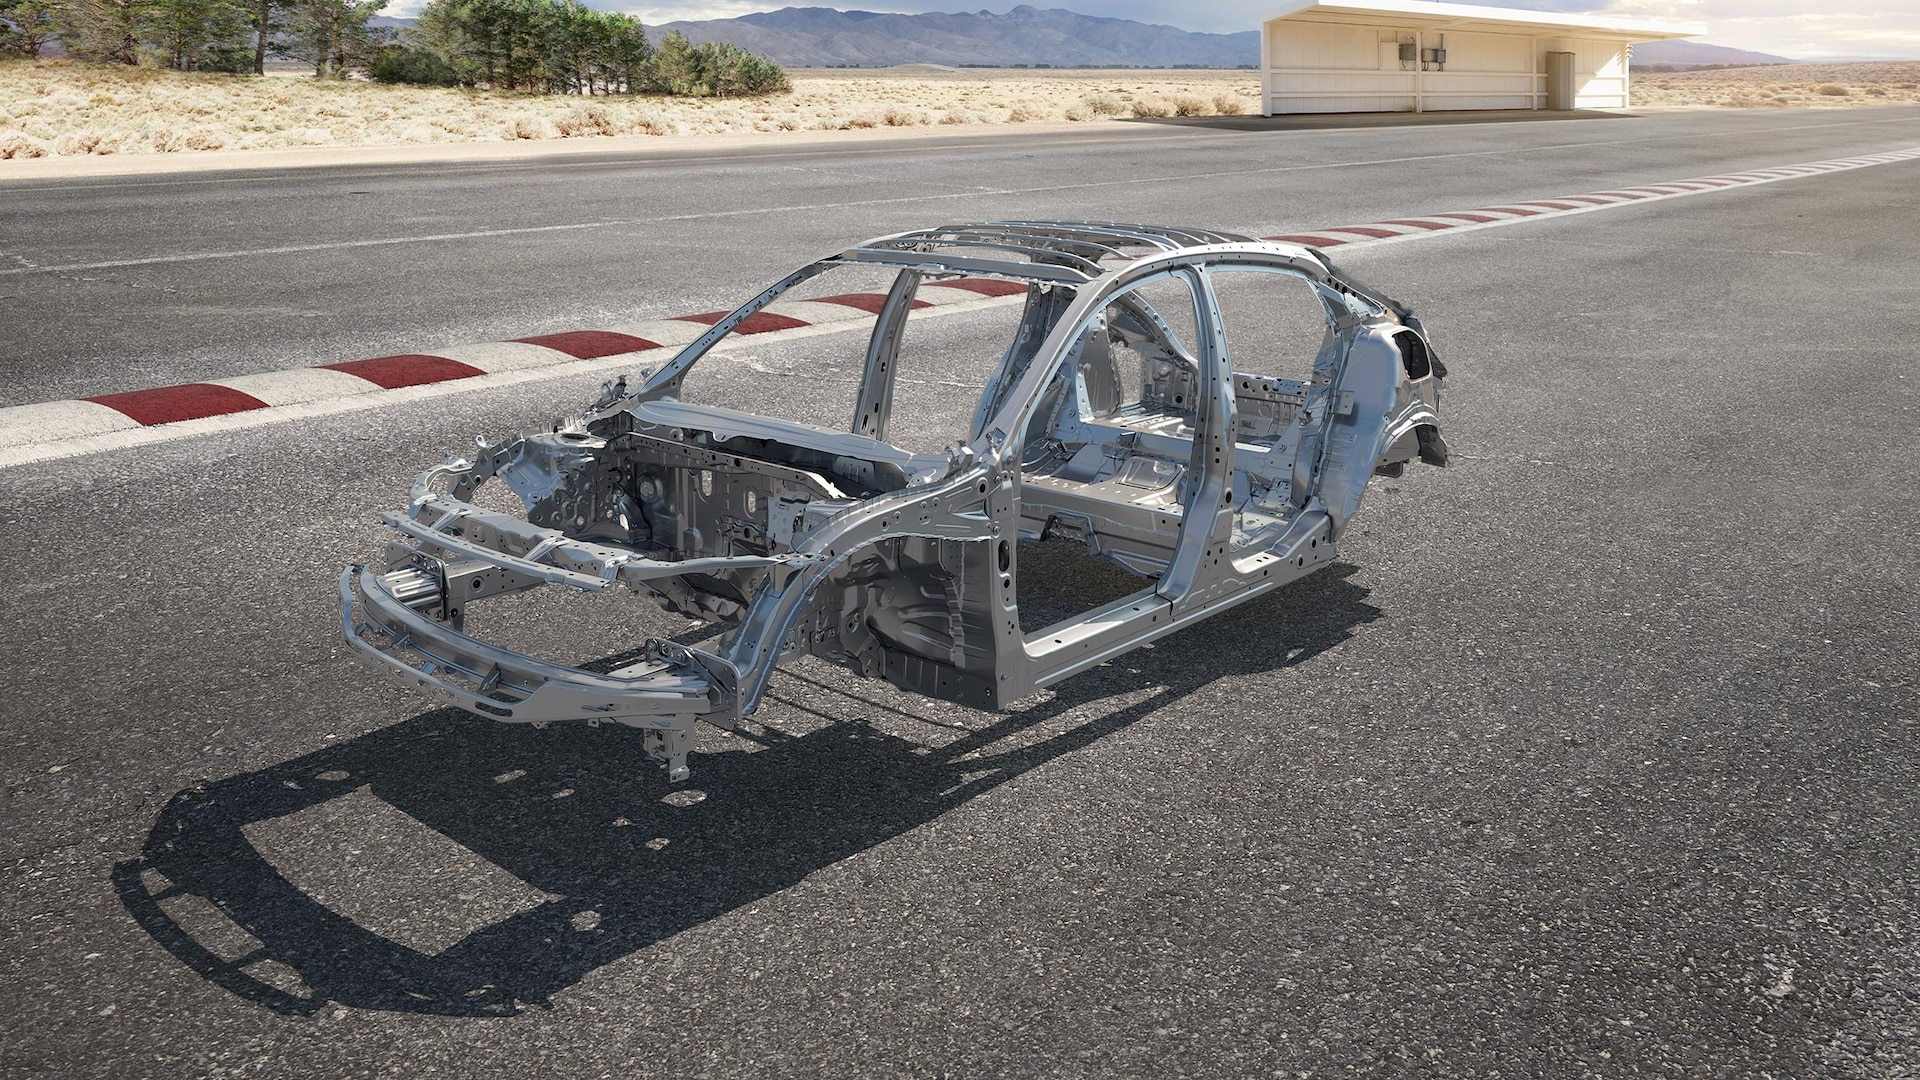 Cutaway view of 2021 Honda Civic Type R frame with ACE™ body structure, superimposed on a desert racetrack.